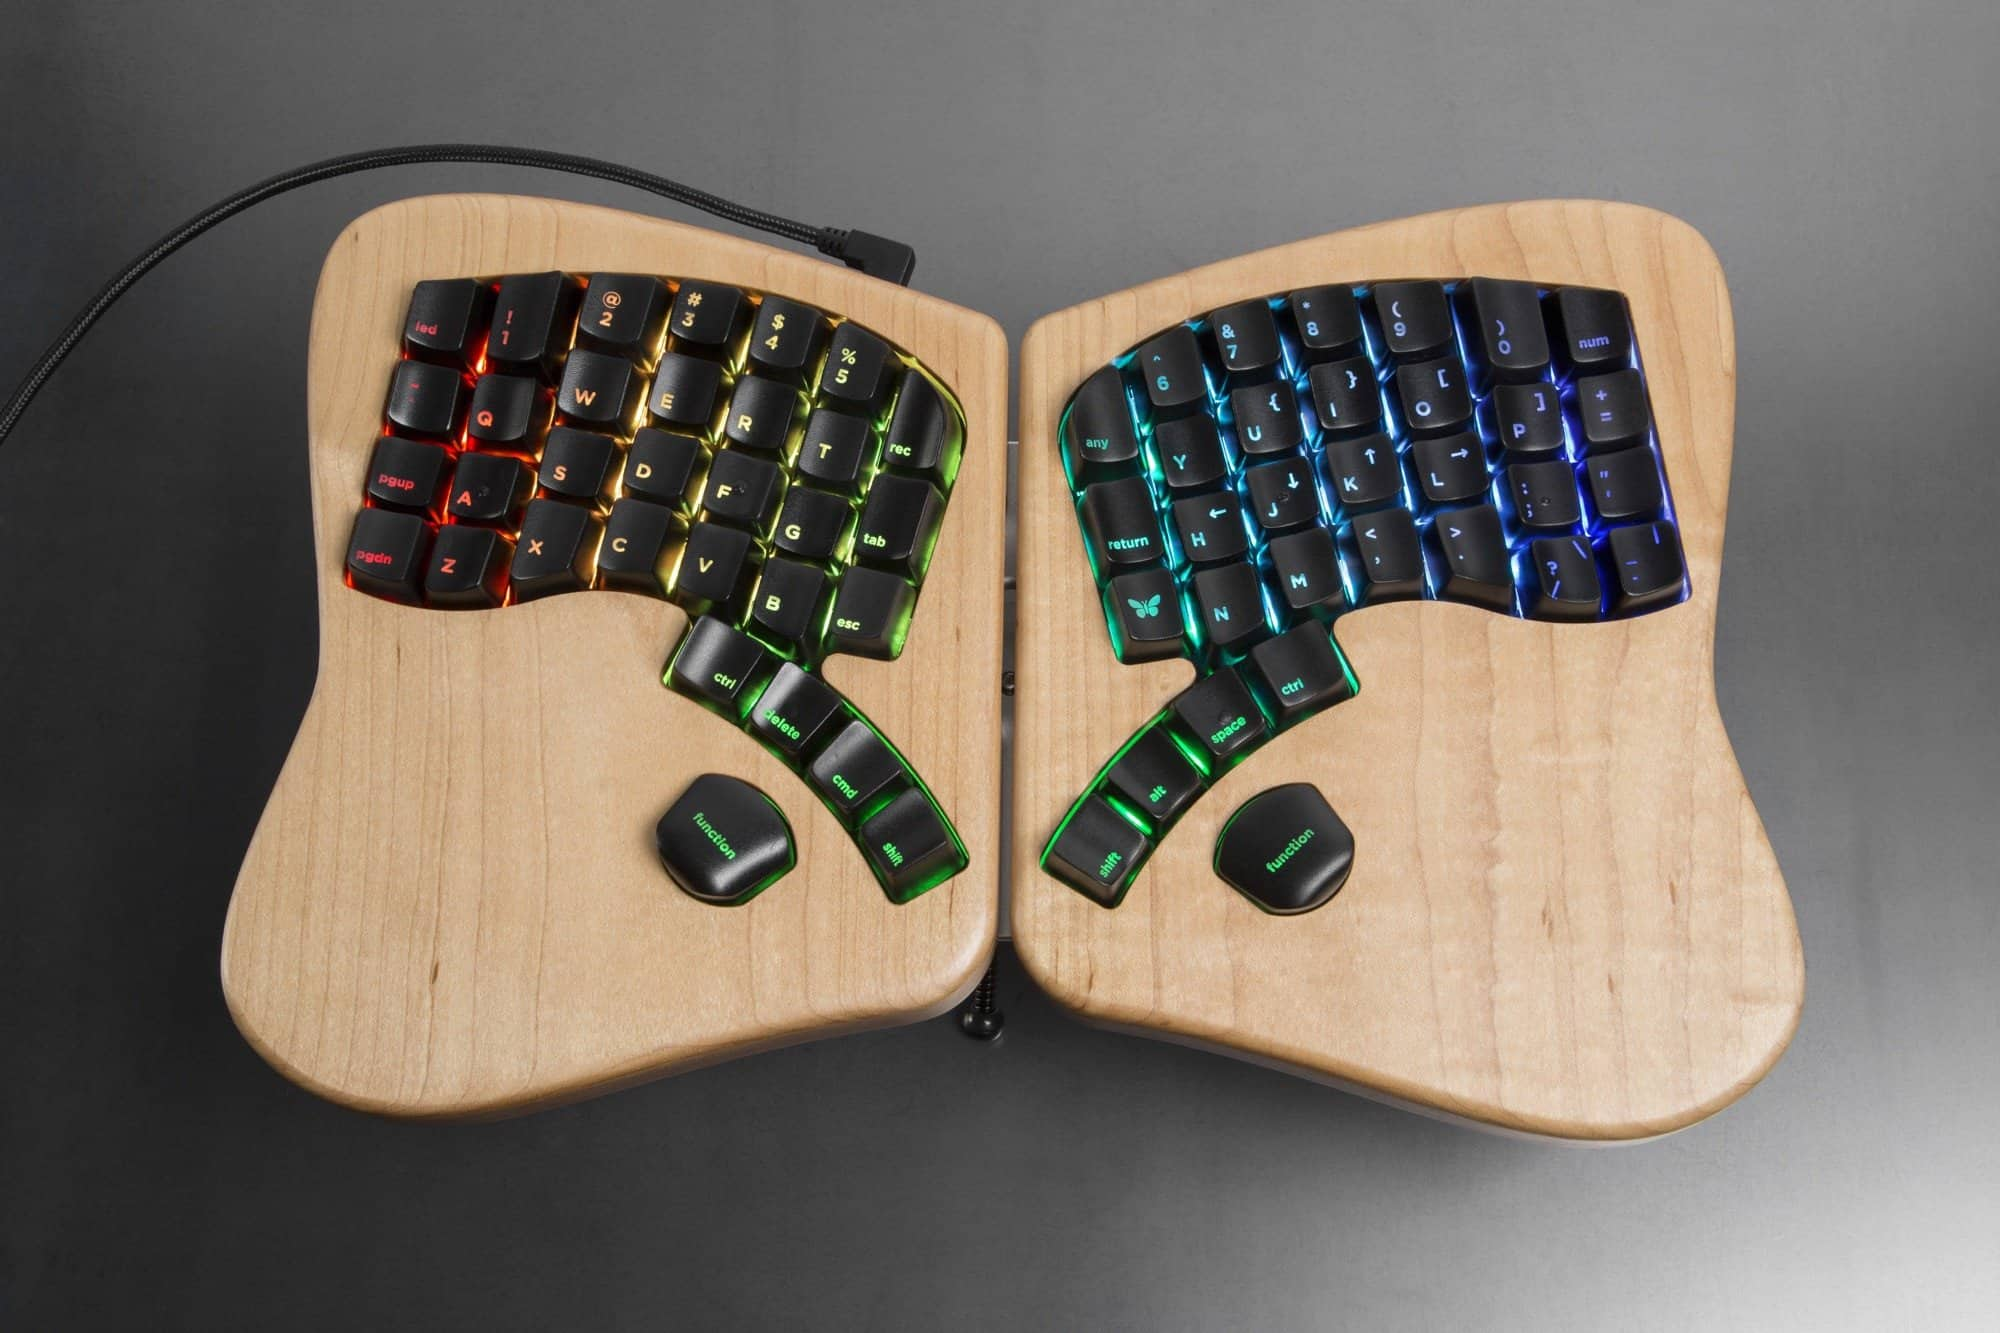 974ea608077 Keyboardio Hits a High Point in Open Hardware | OCS-Mag